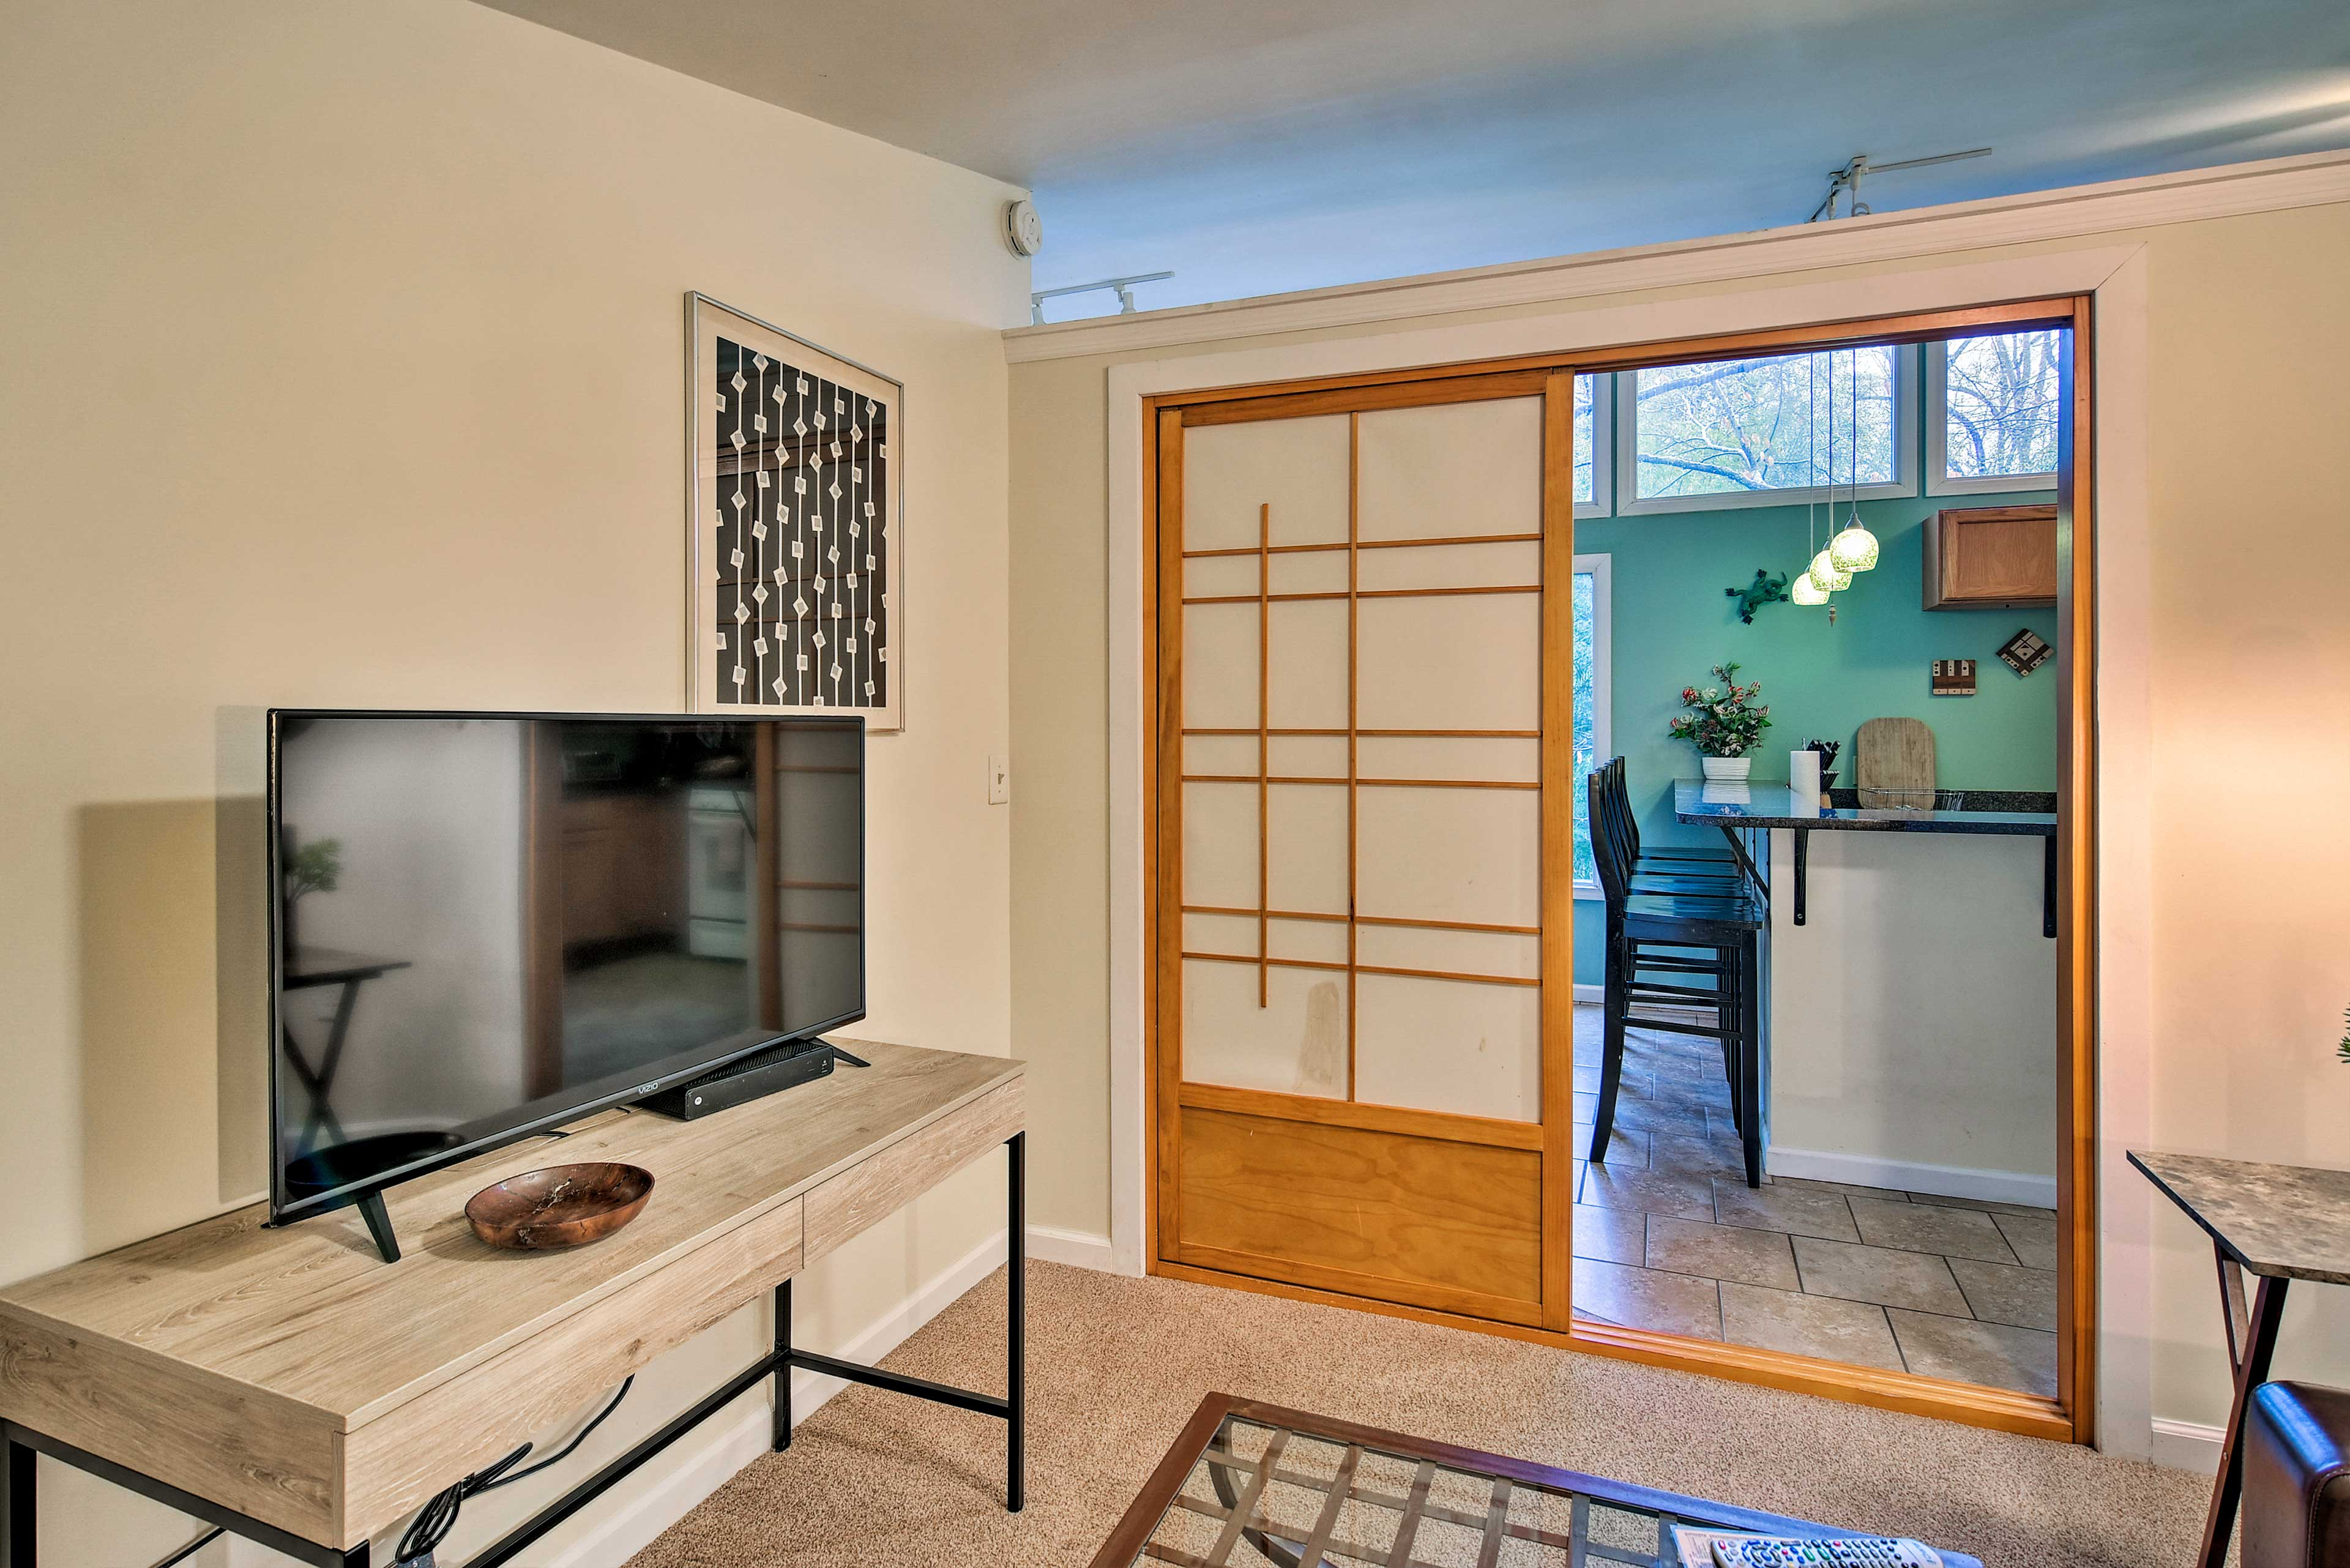 The zen feng shui of the apartment will ease your stress.